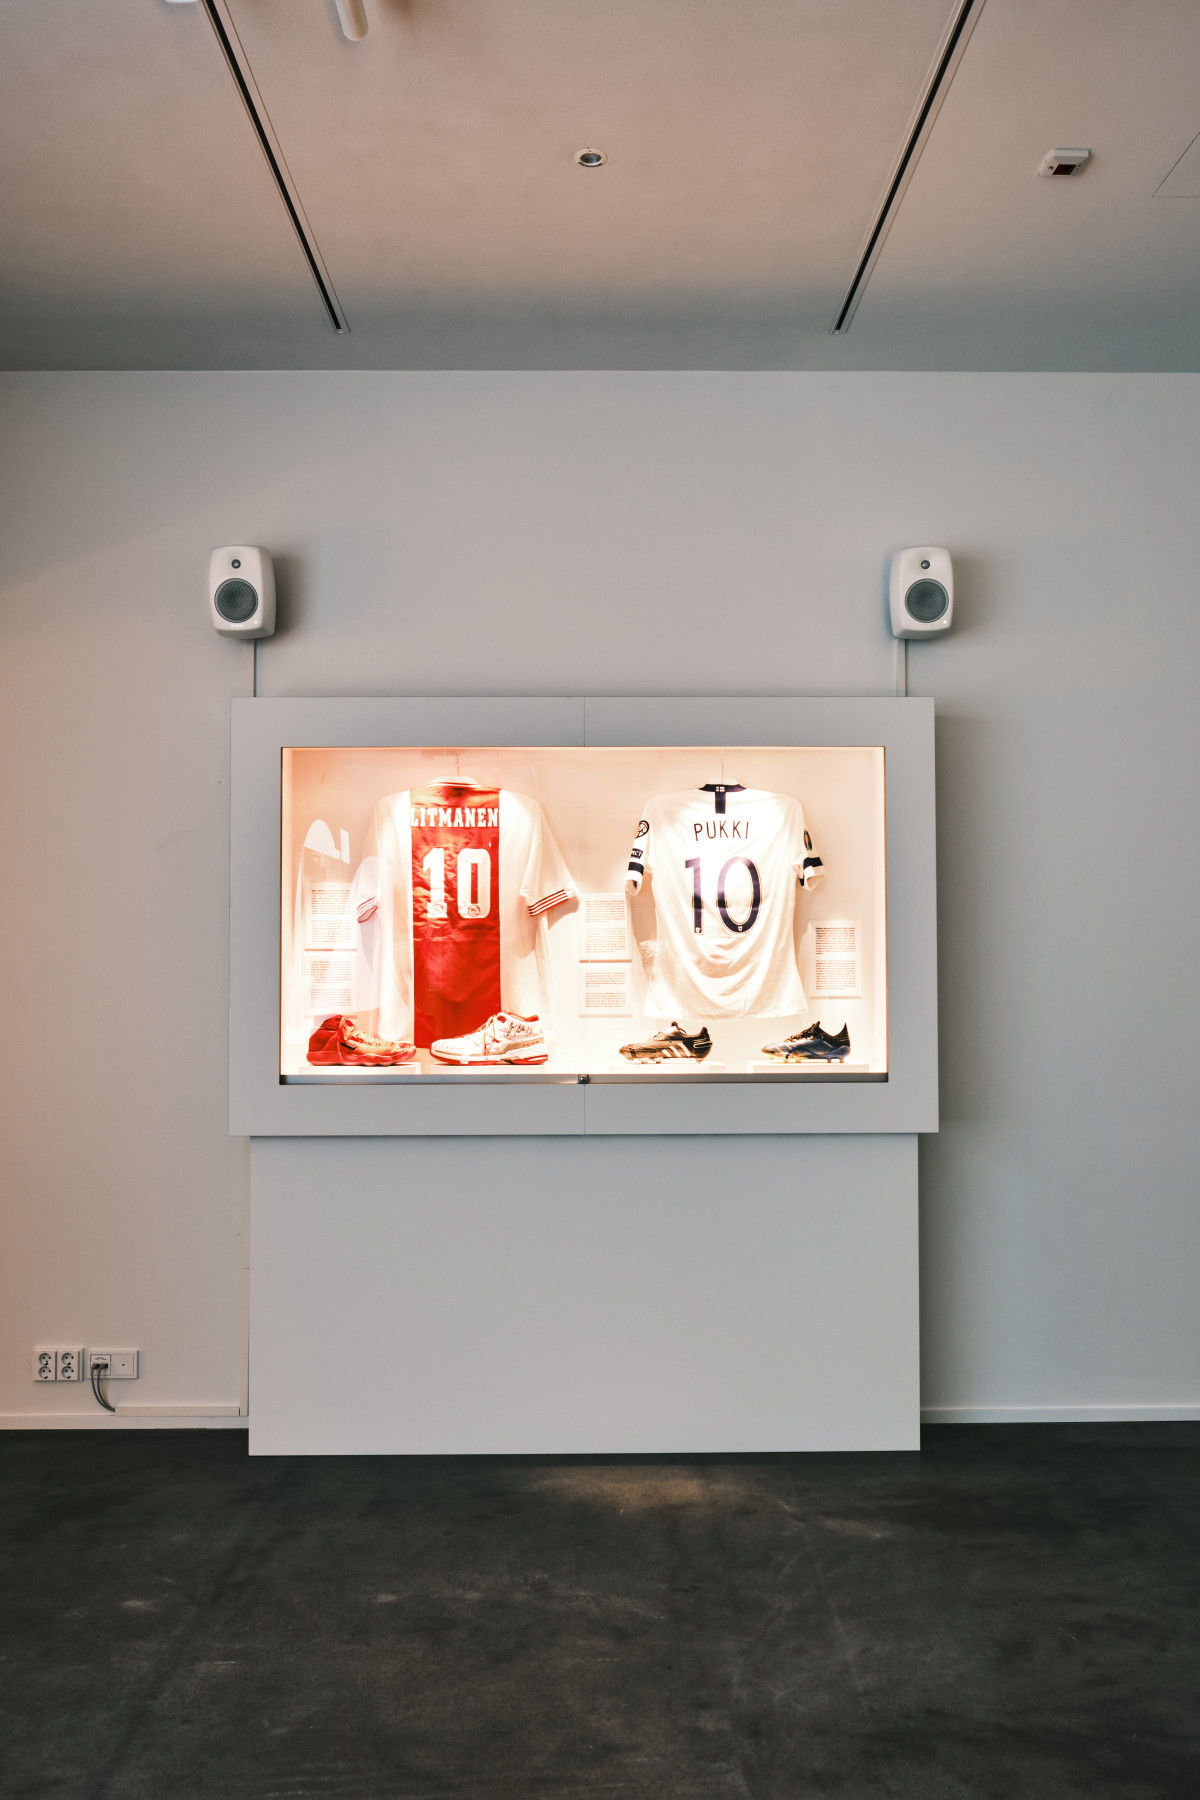 Finnish Sports Museum - PR Image 3